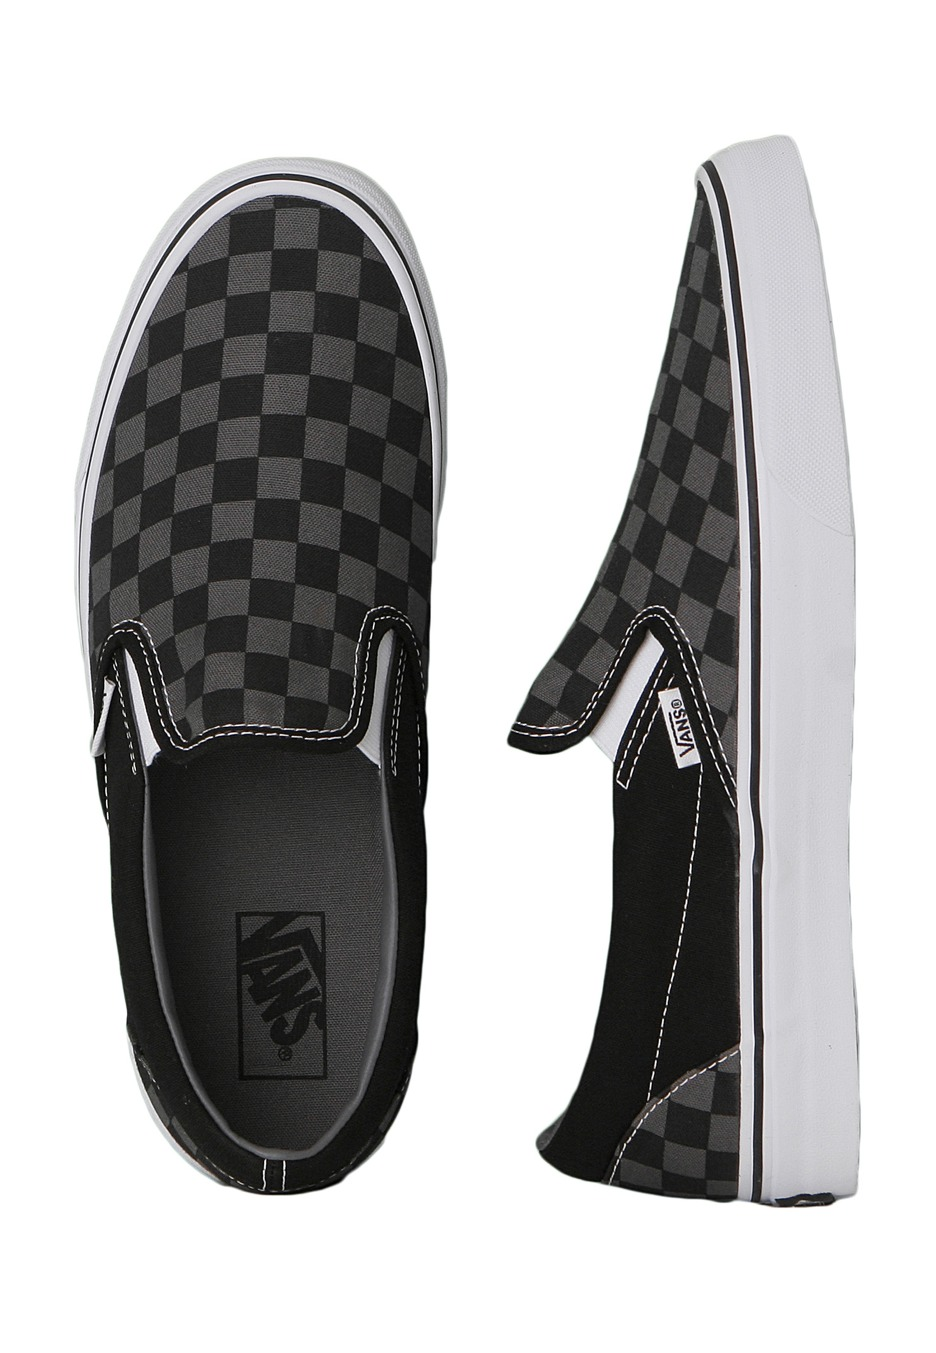 d4705c1625 Vans - Classic Slip-On Black Pewter Checkerboard - Shoes - Impericon.com UK